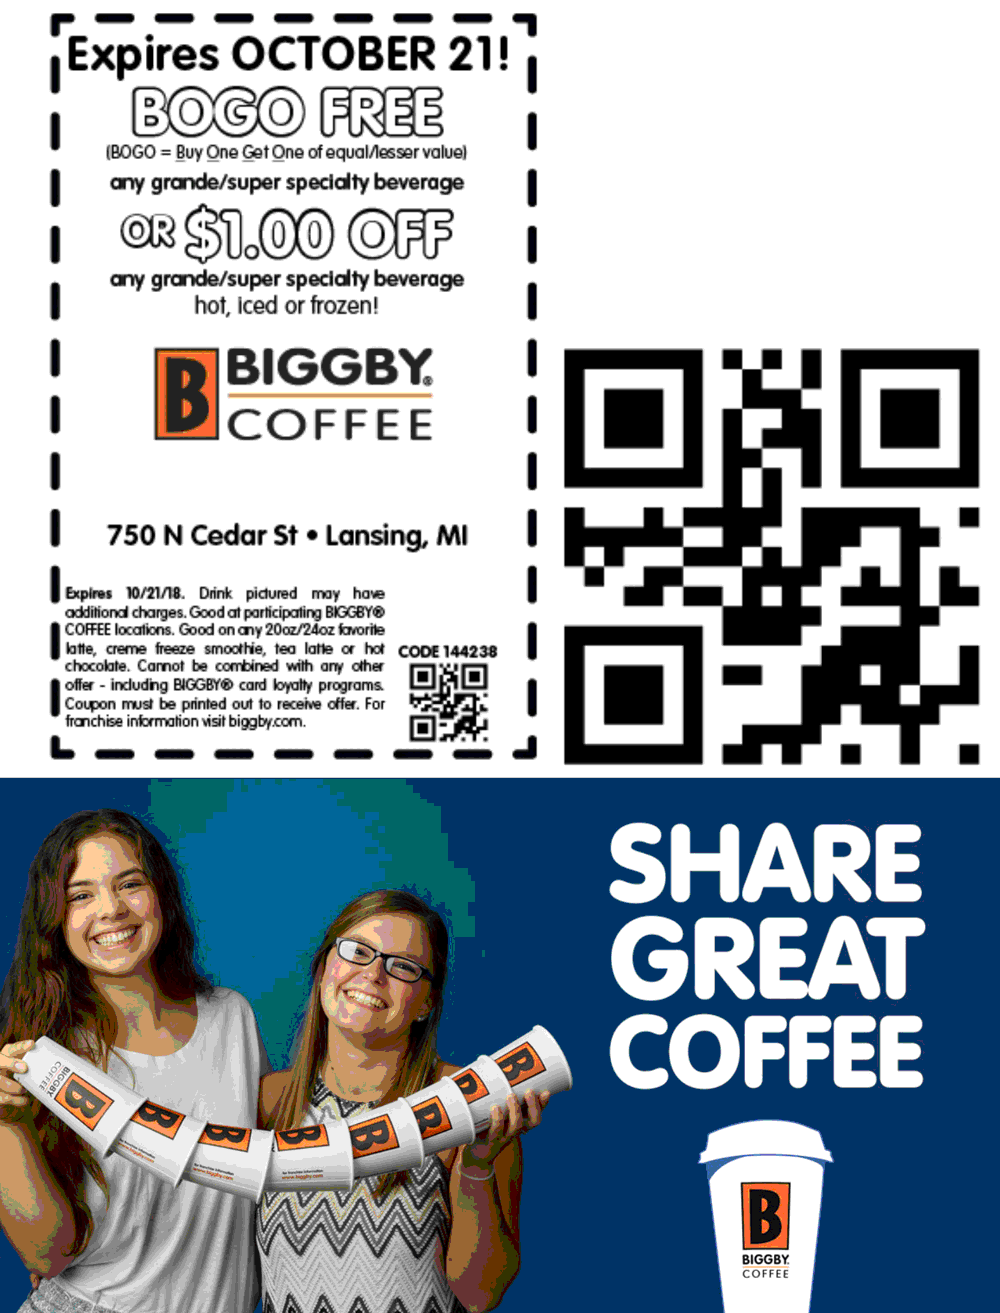 Biggby Coffee Coupon January 2020 Second beverage free at Biggby Coffee